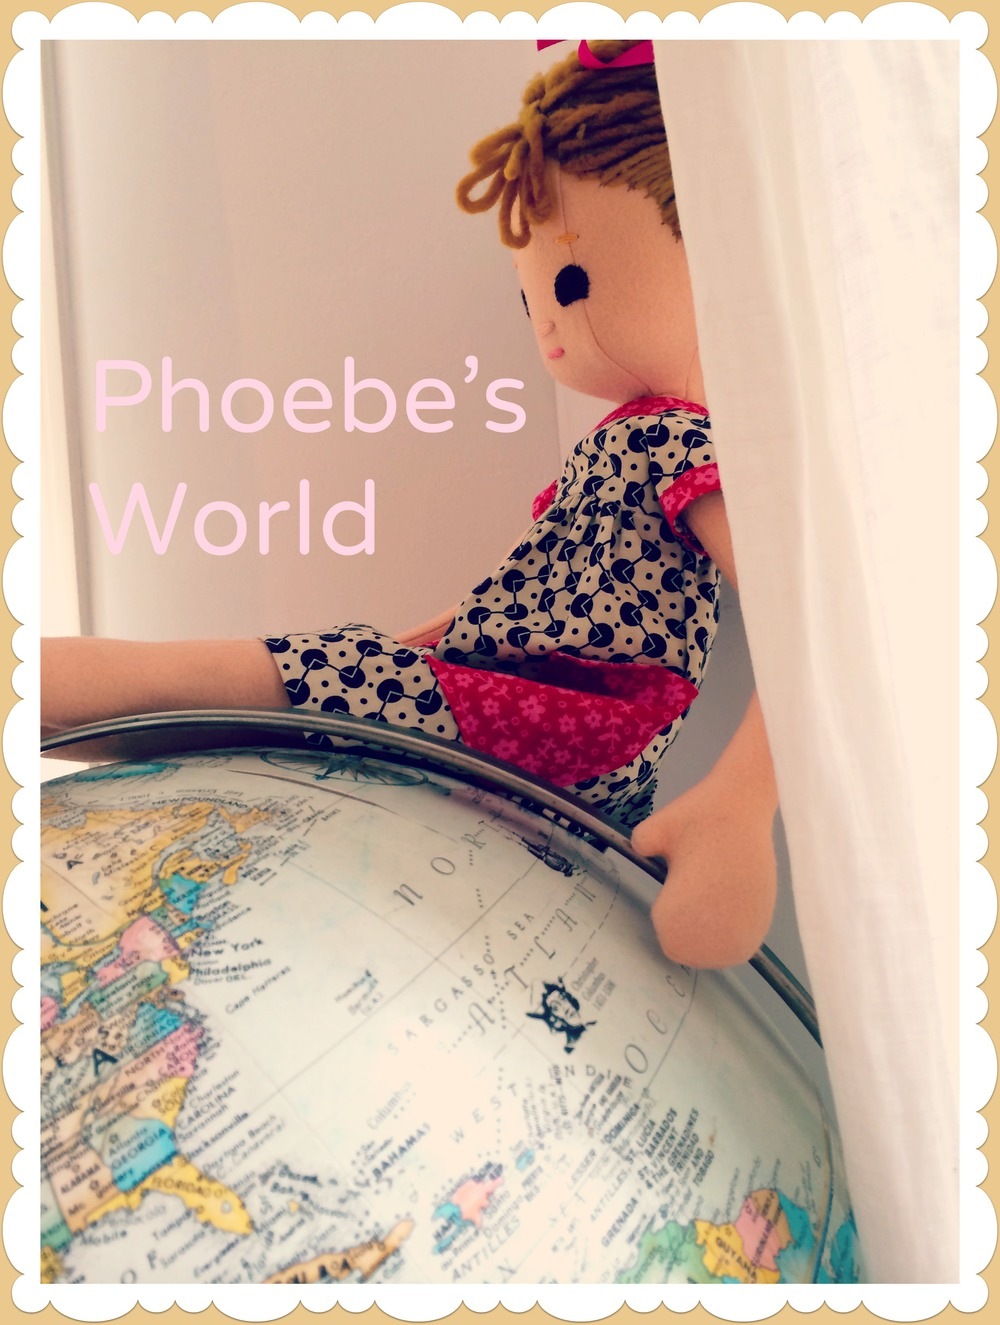 PhoebesWorld